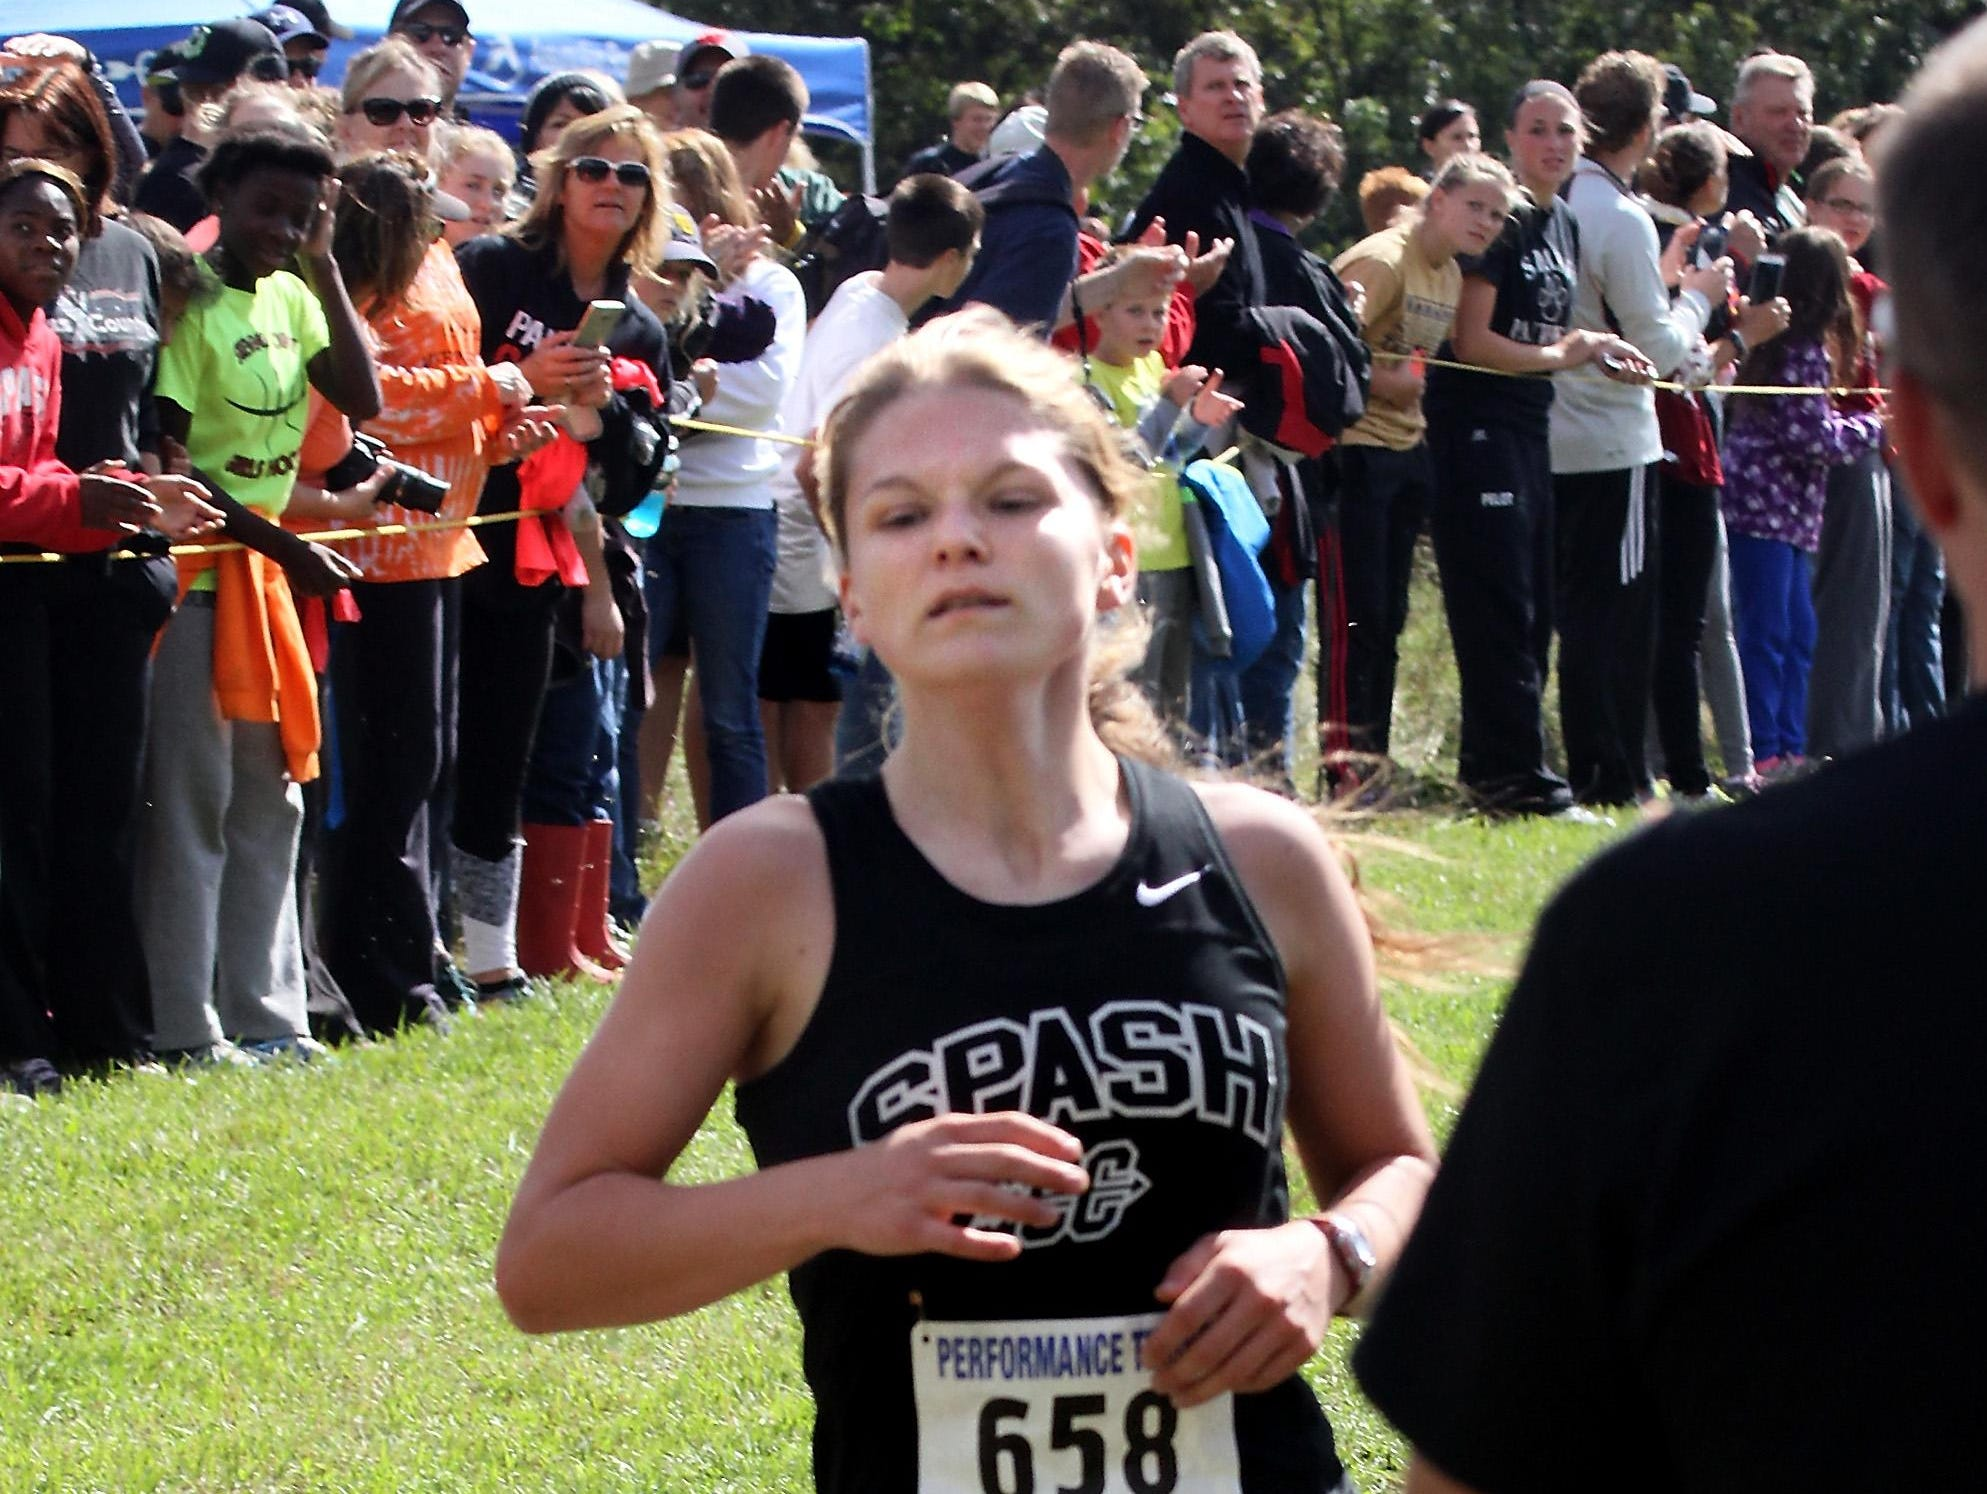 Autum Shurbert-Hetzel, SPASH, finishes first in the the SPASH Invitational Saturday at Standing Rocks County Park near Plover.